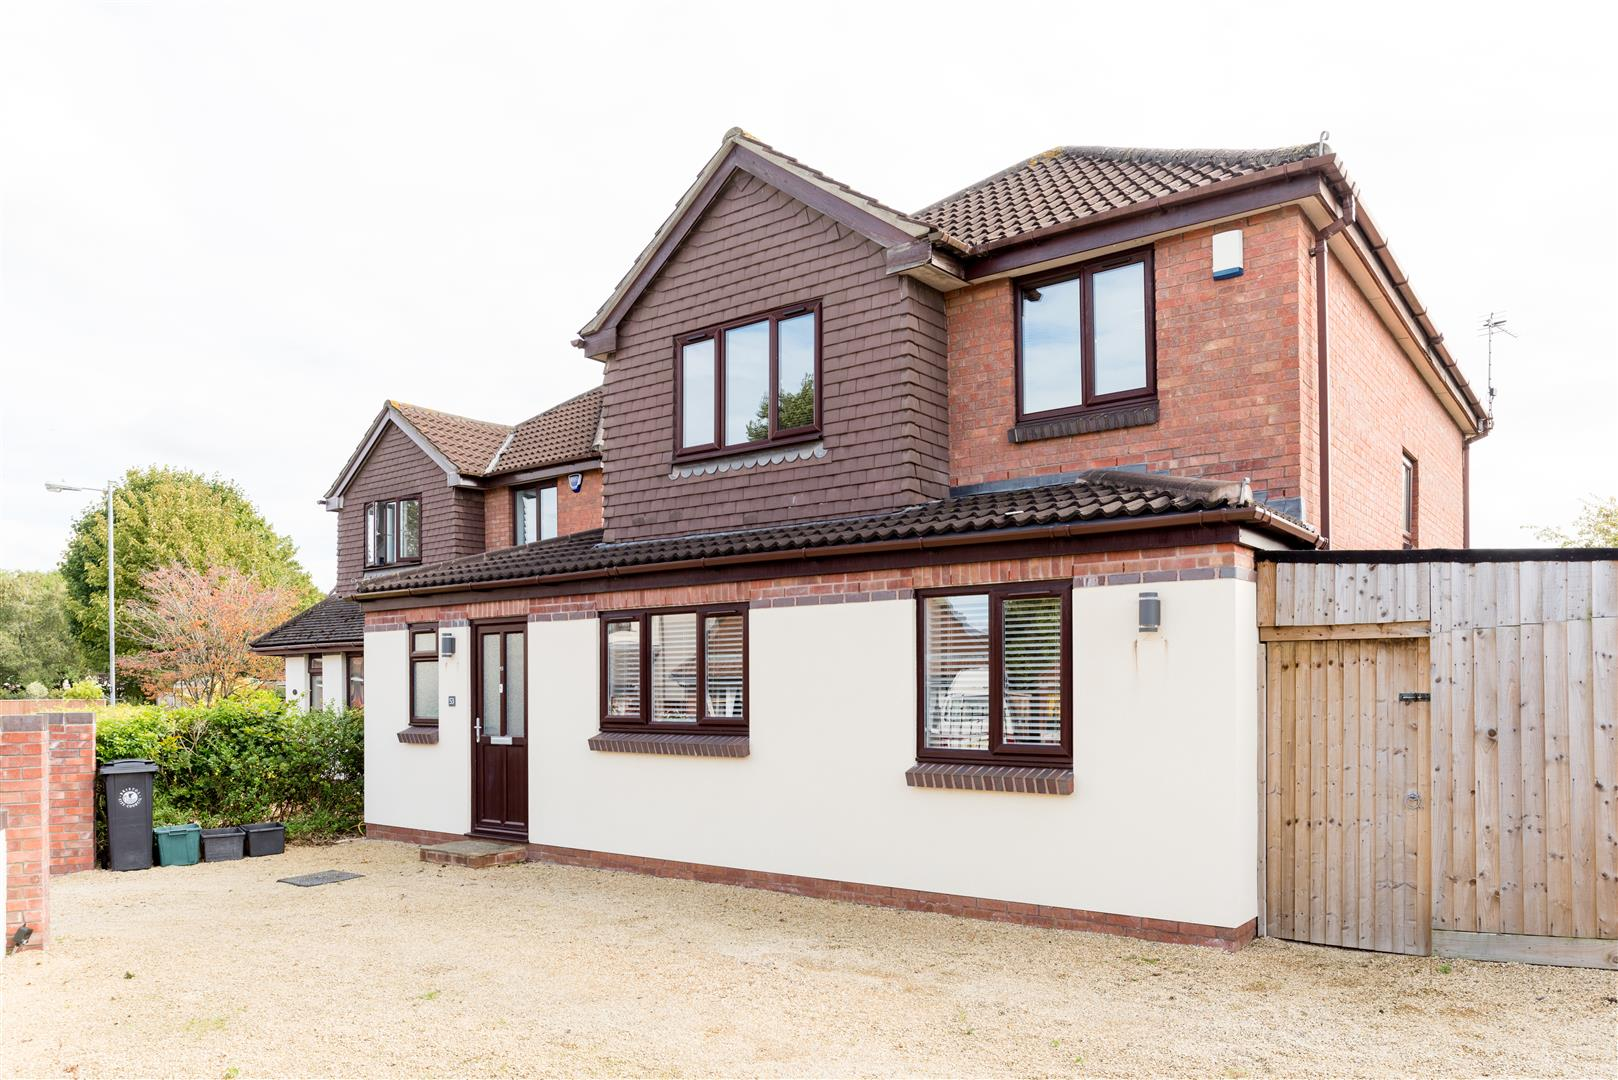 3 bed house for sale in Fallodon Way, Bristol 0